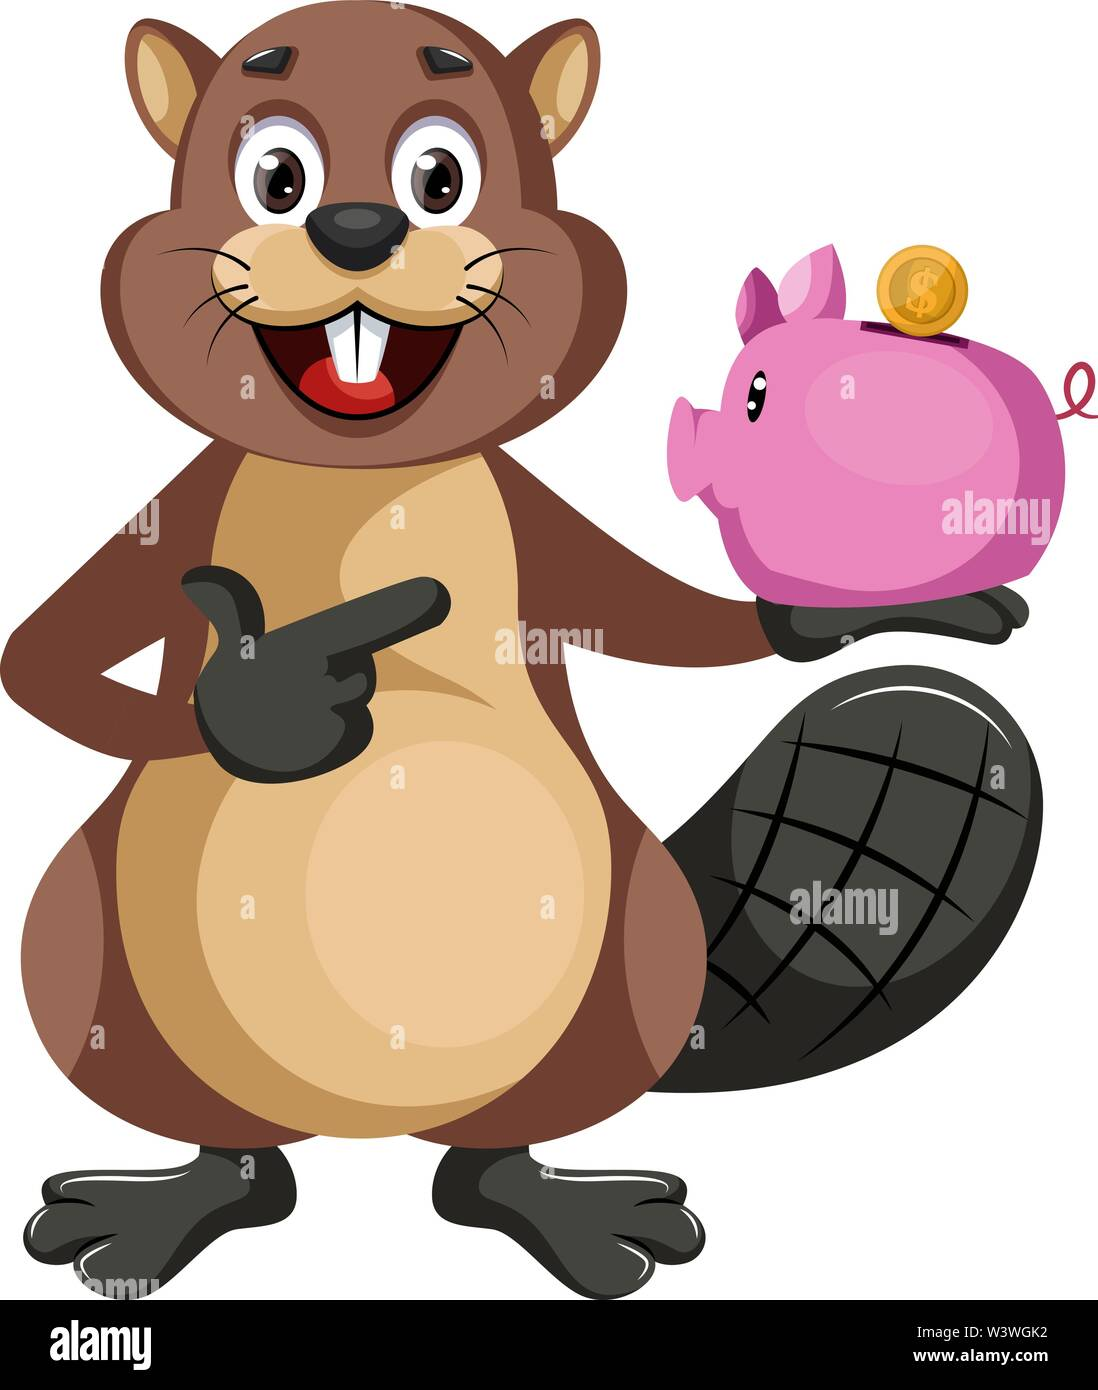 Beaver with piggy bank, illustration, vector on white background. - Stock Image